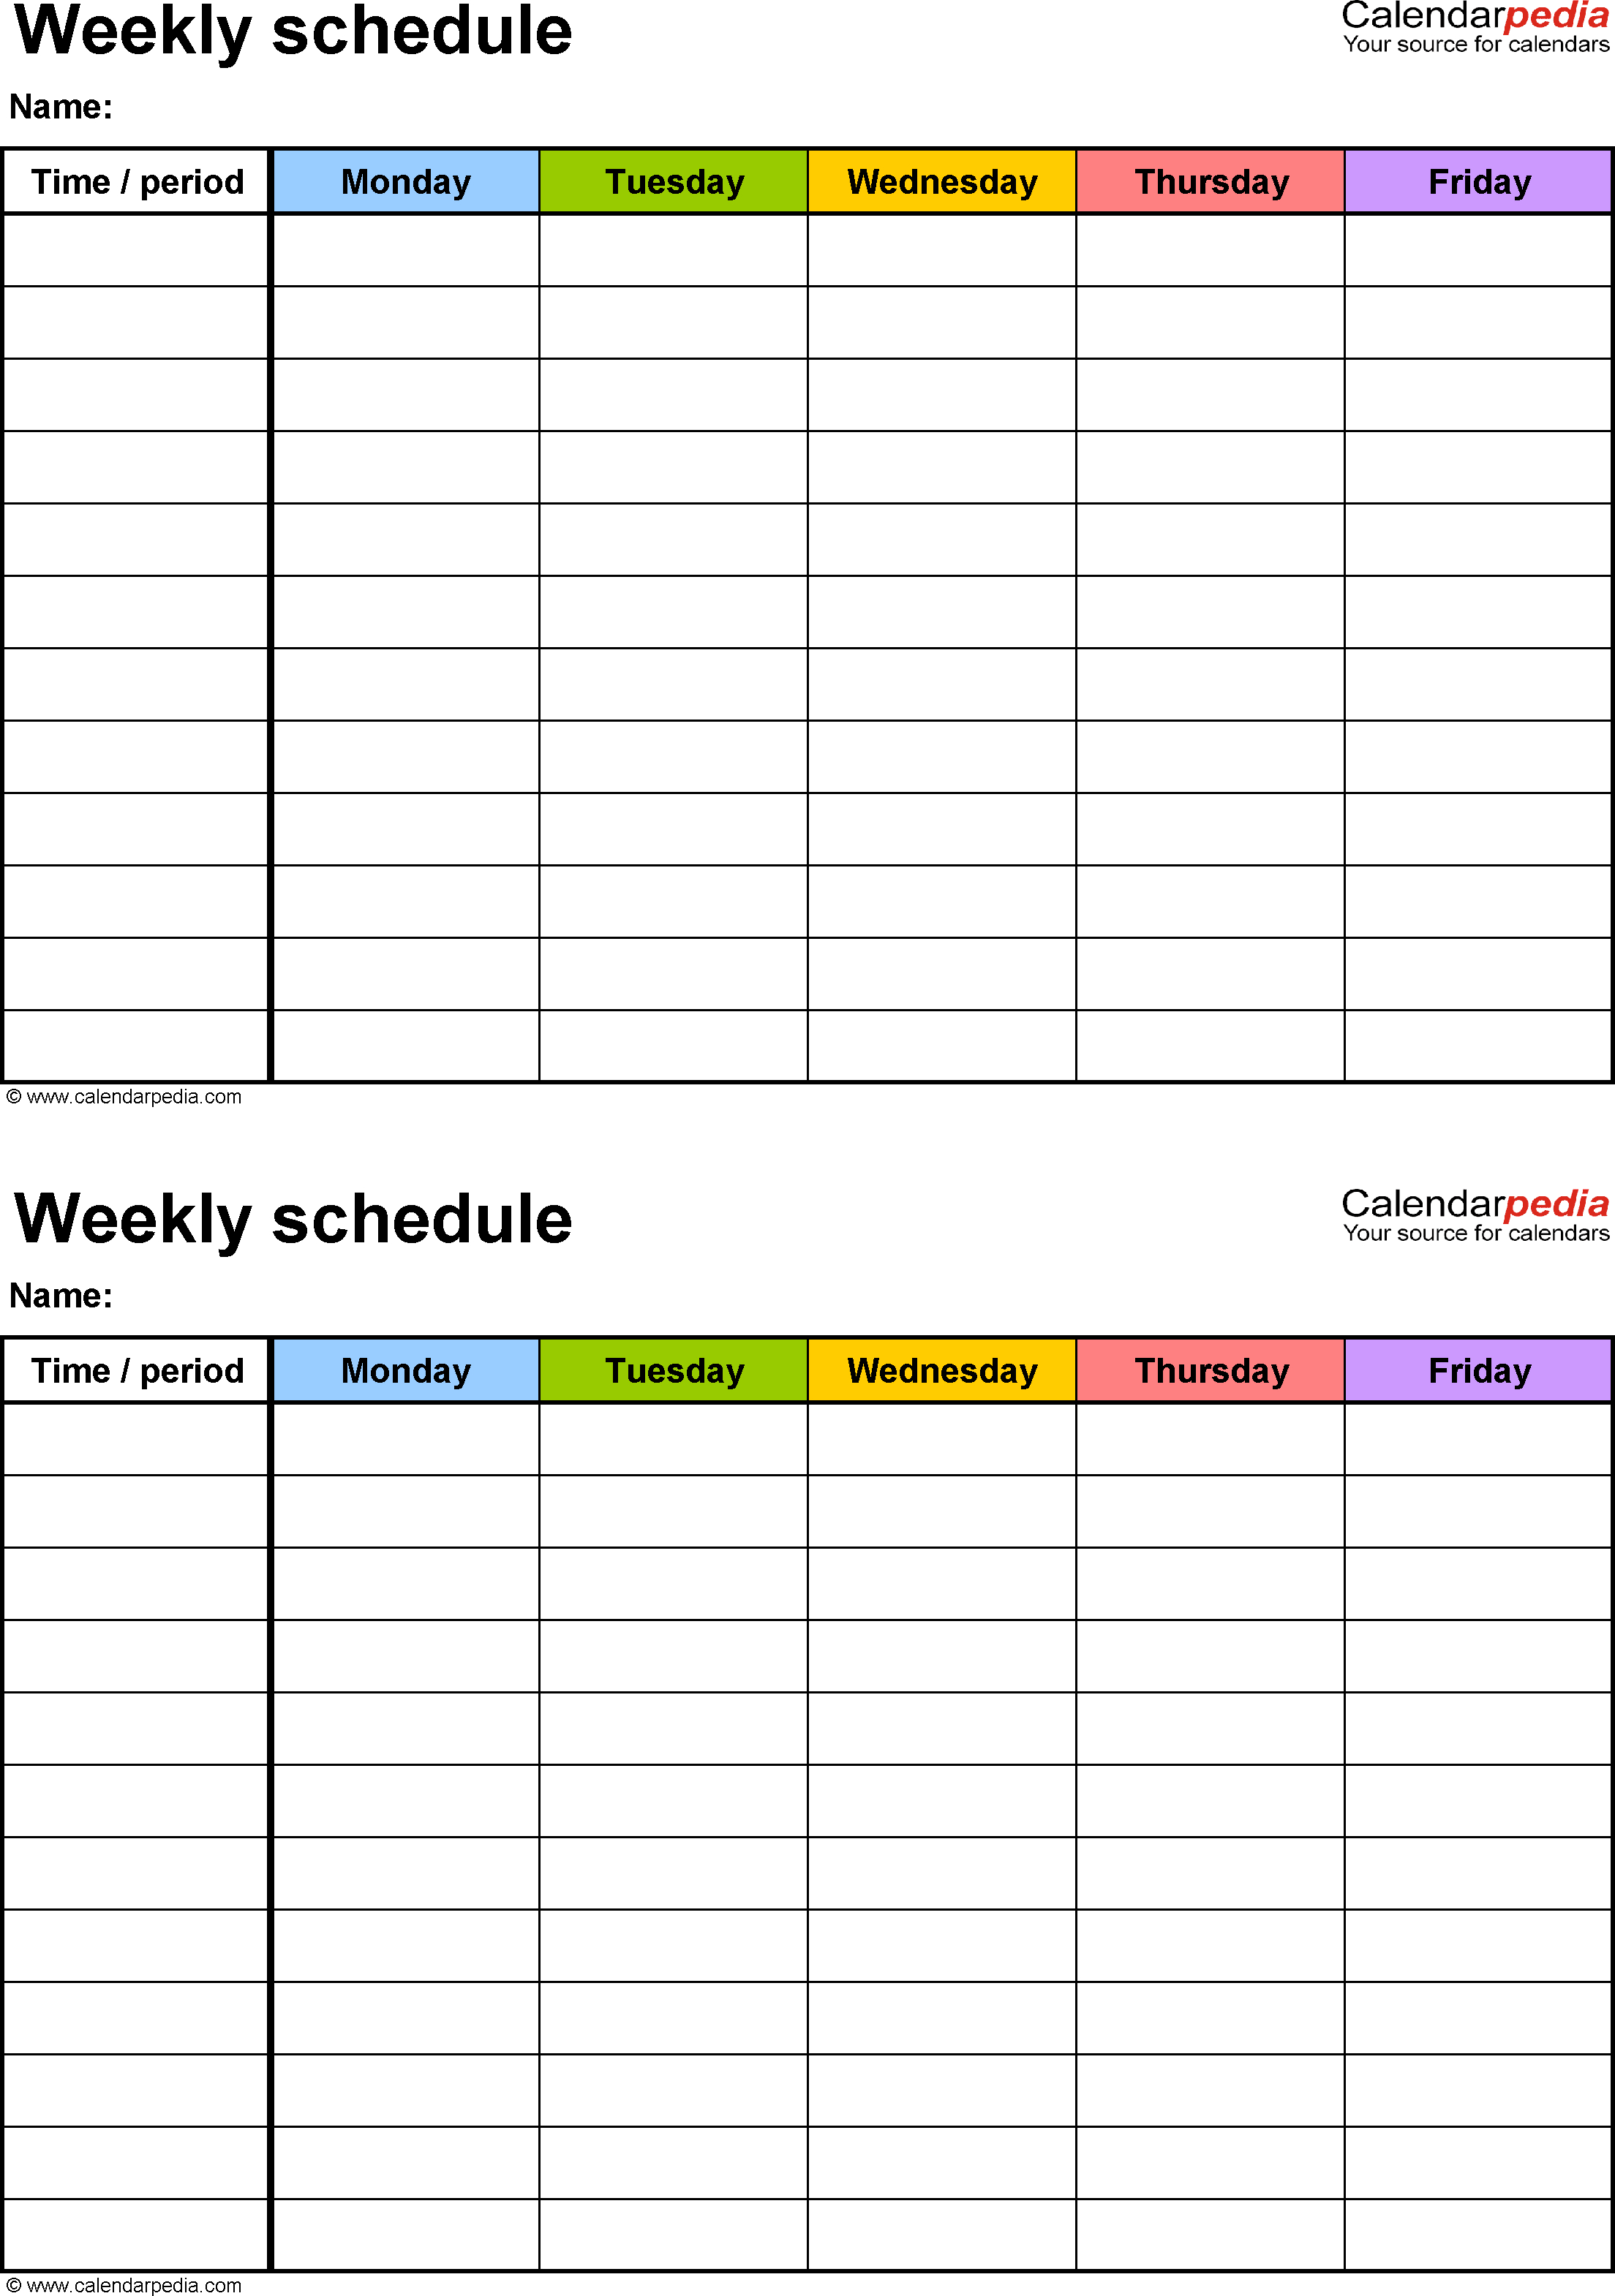 Week Schedule Print Out - Wpa.wpart.co